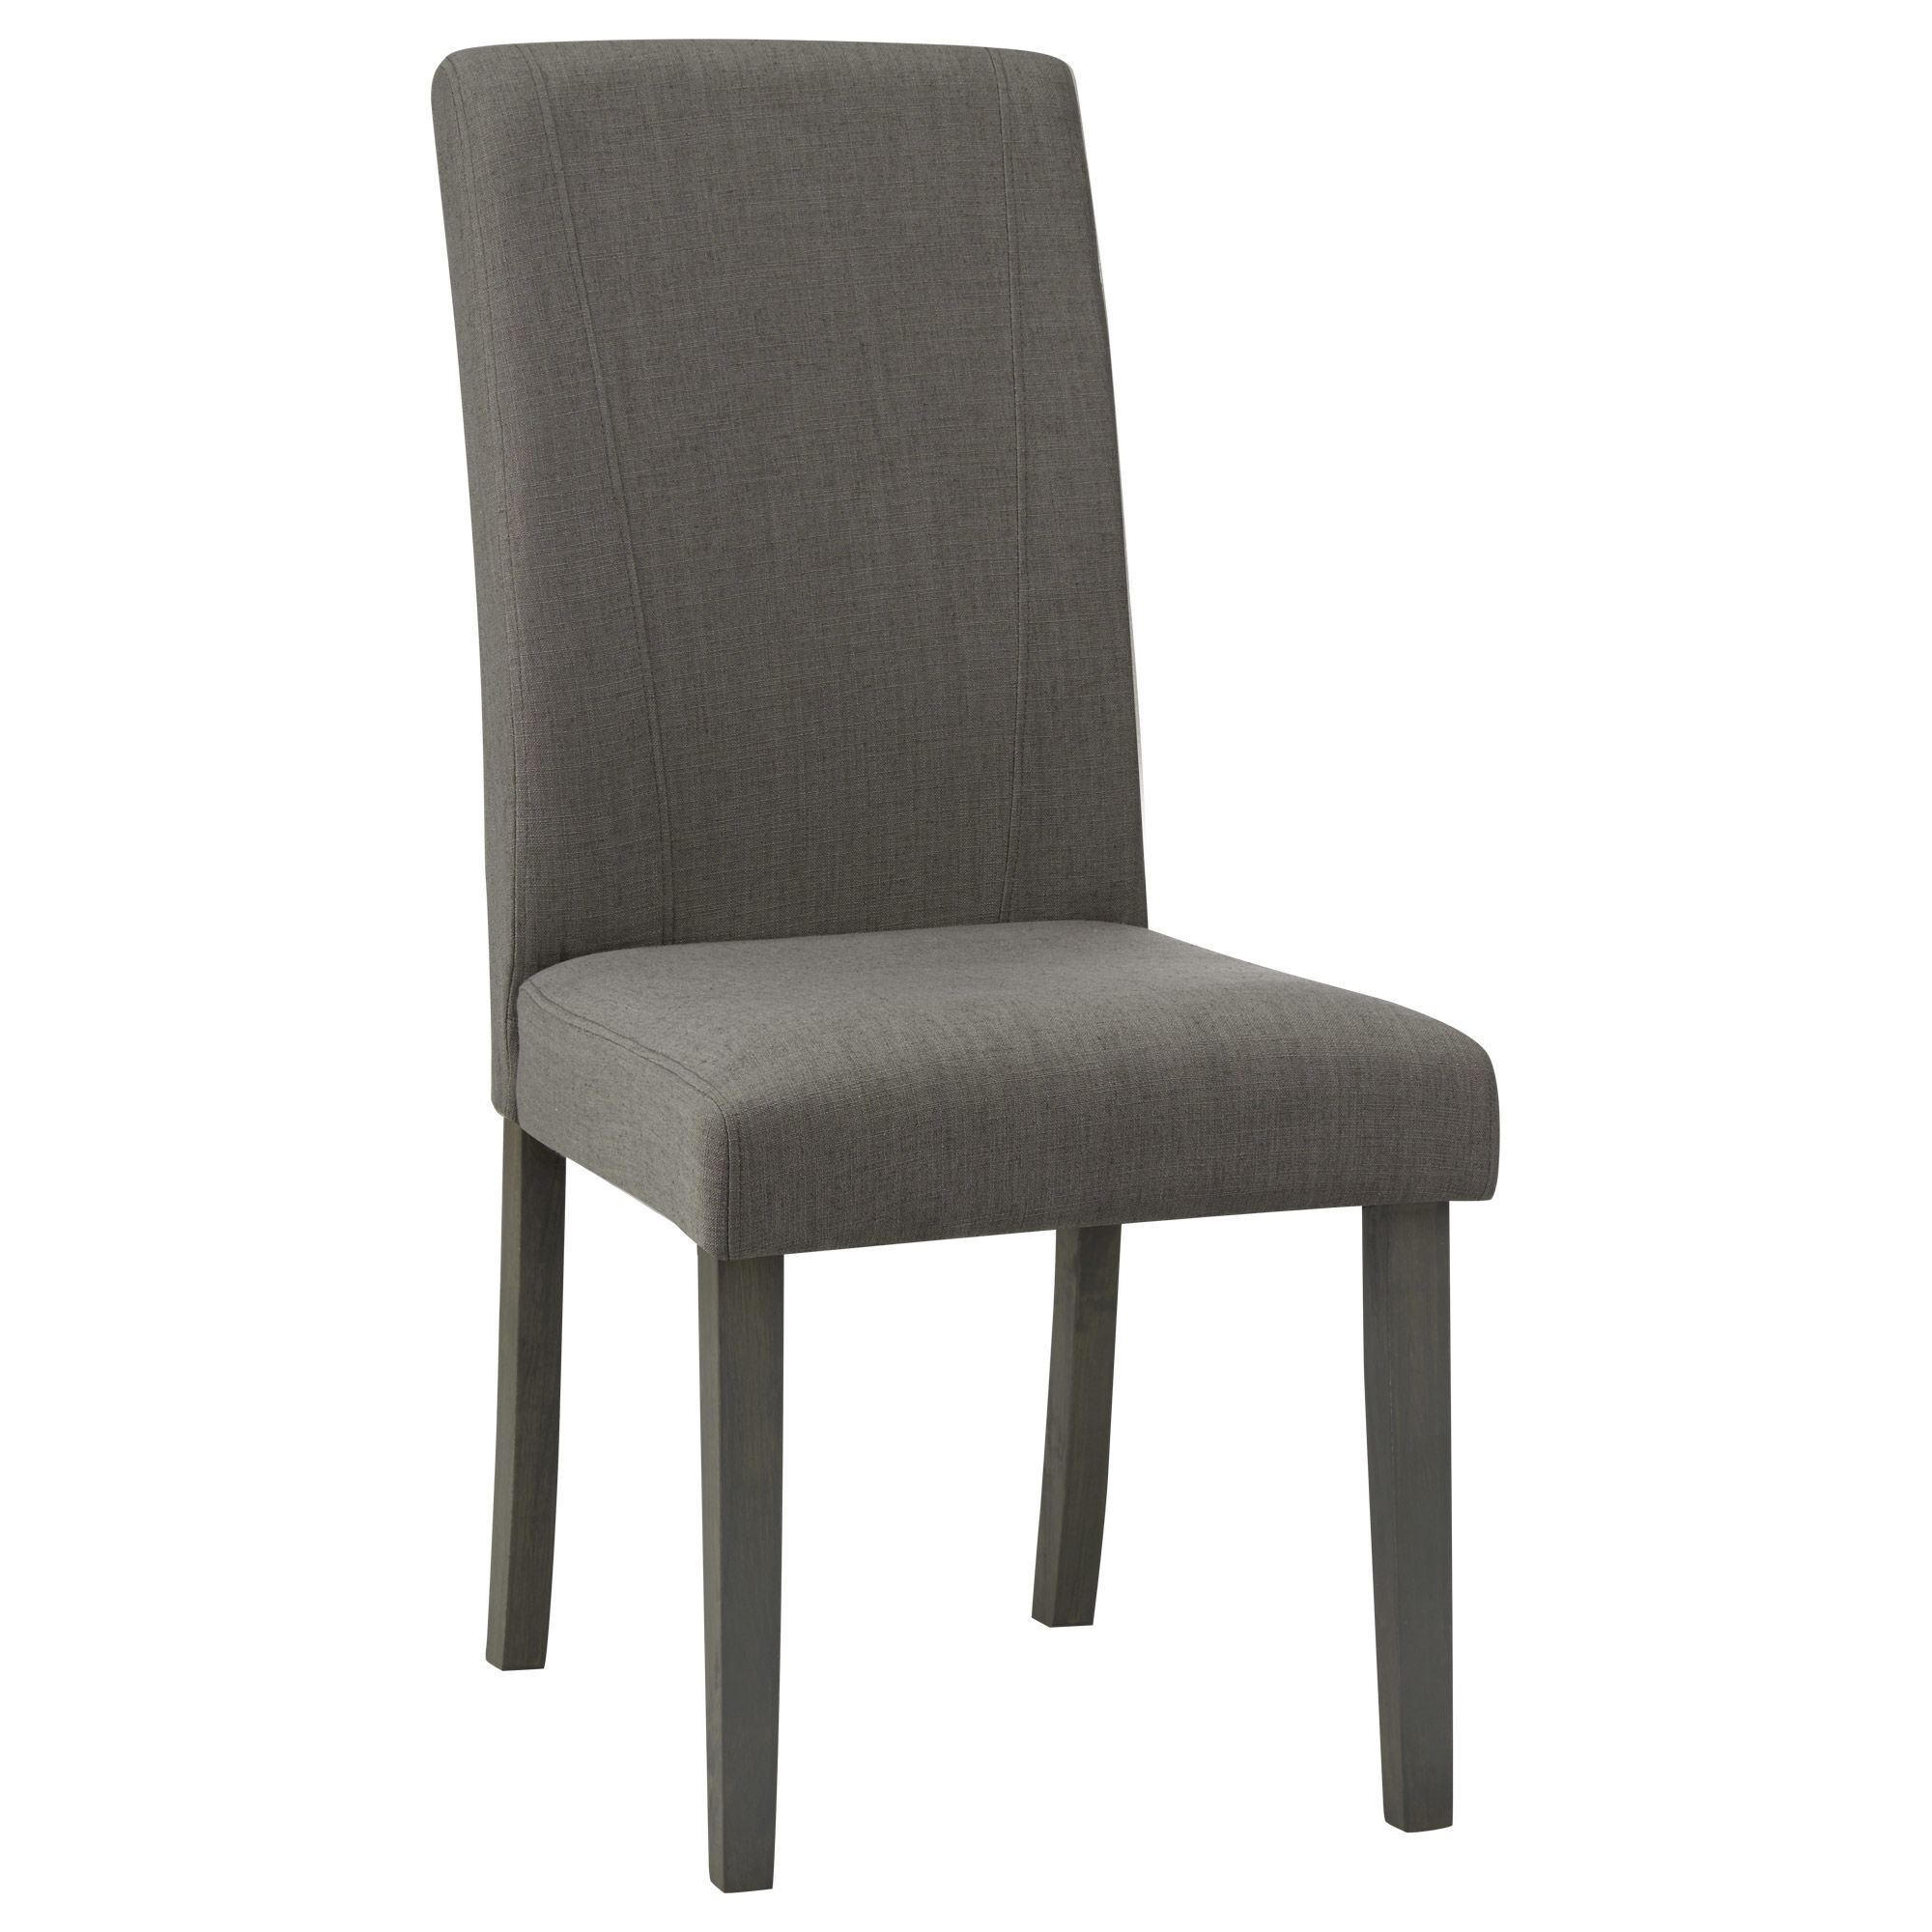 dining chair covers edmonton black velvet chaise lounge chairs at great prices bouclair com fabric and rubberwood